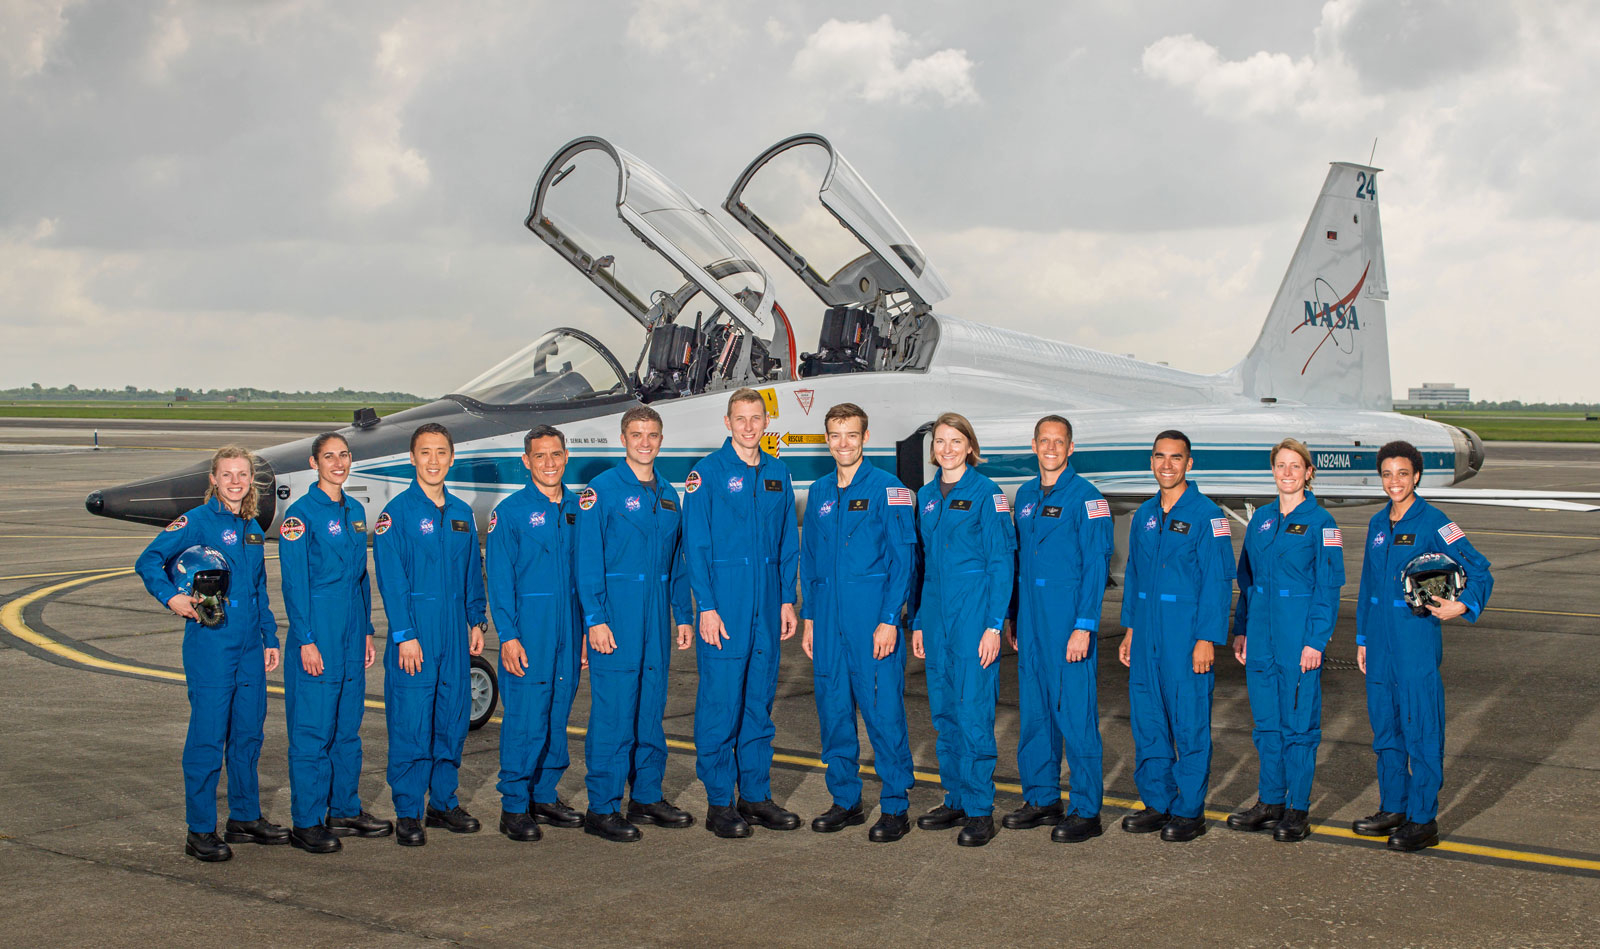 Formed by 22 people, a team of NASA astronauts for future space missions